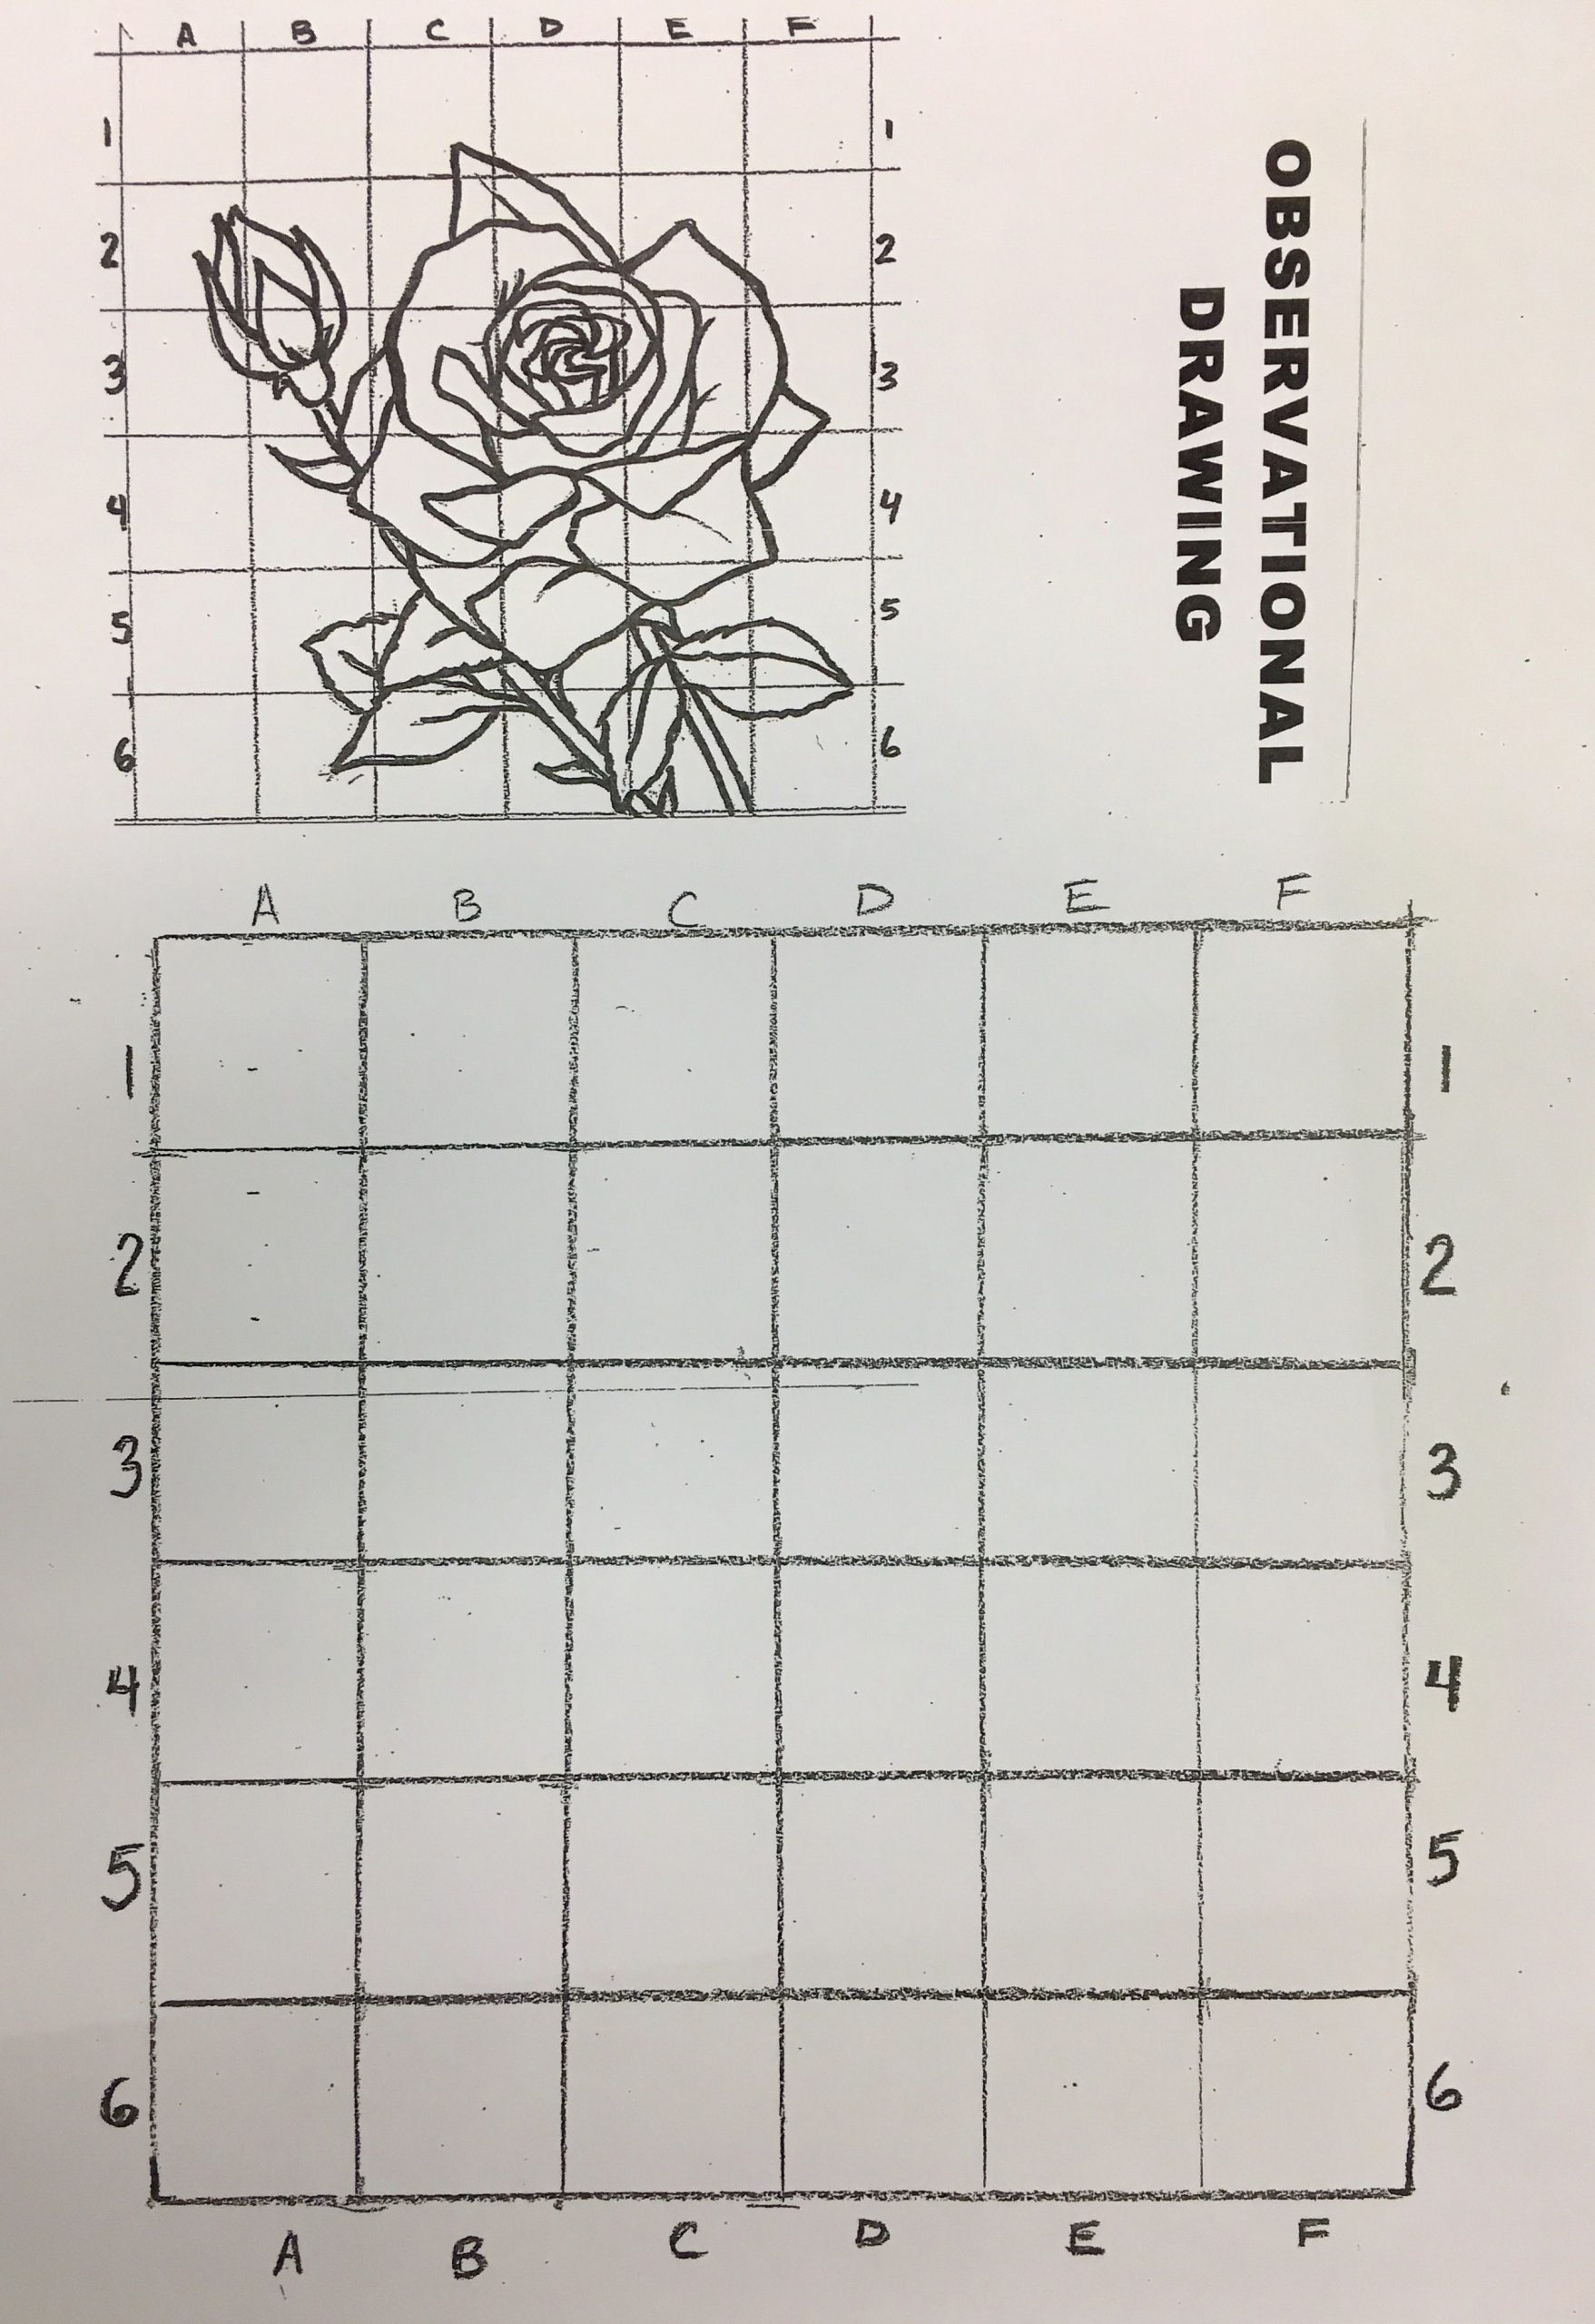 Grid Drawing Worksheets Middle School Challenging Drawing Exercise I Remember Doing This In